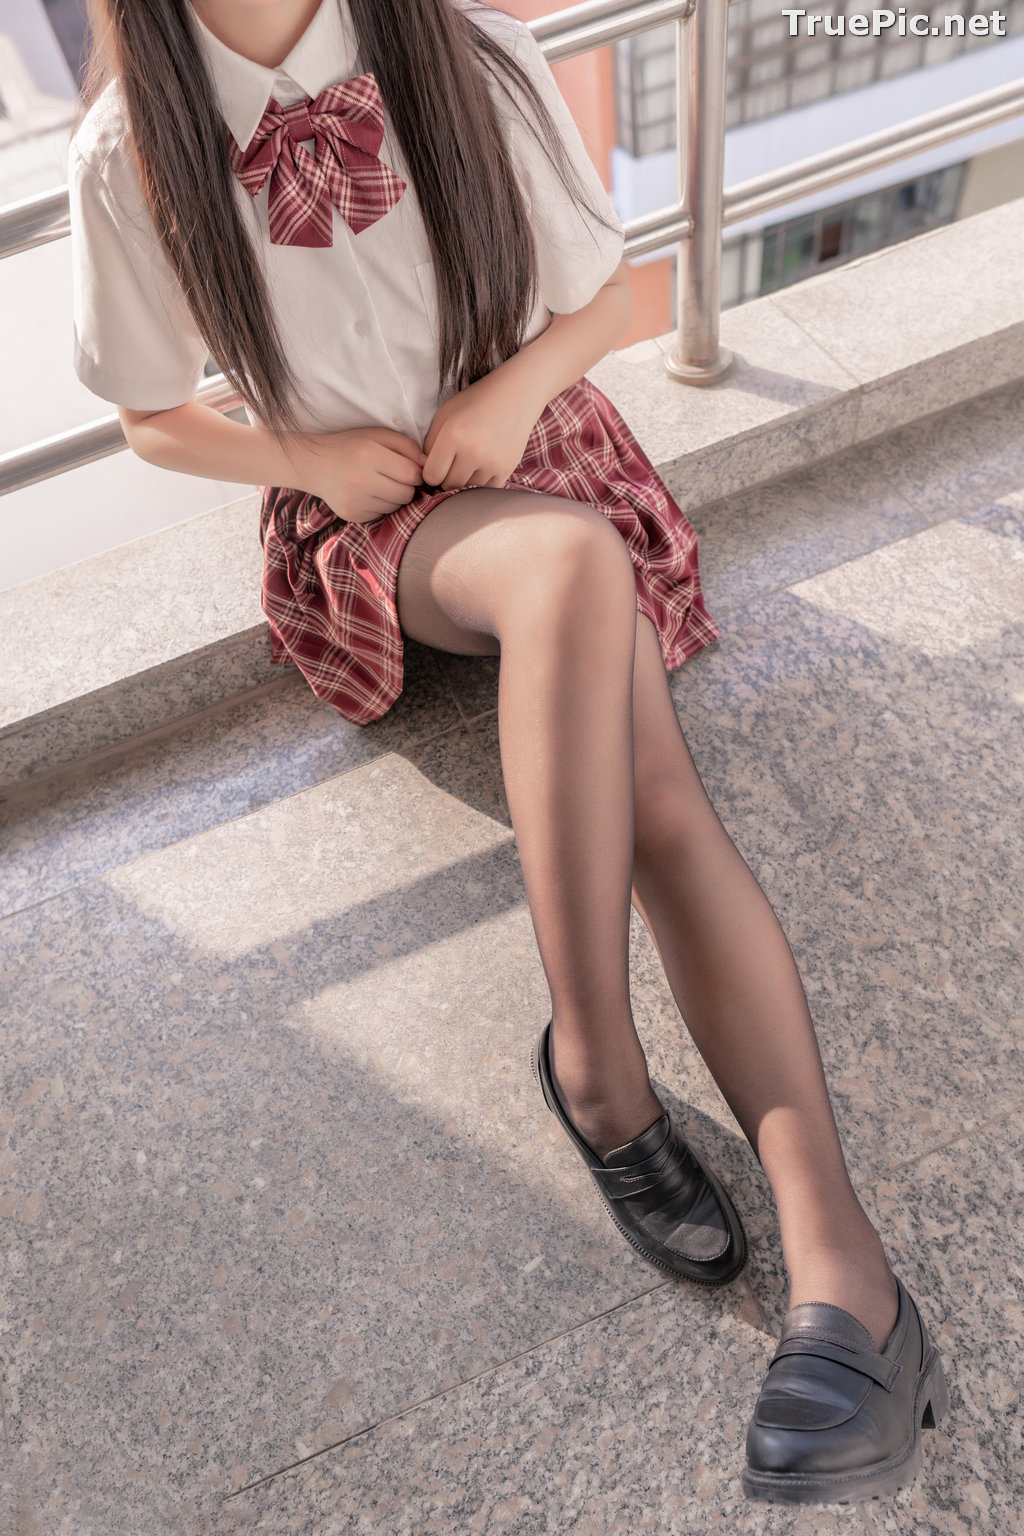 Image [MTCos] 喵糖映画 Vol.023 – Chinese Cute Model – Long Hair JK Girl - TruePic.net - Picture-2